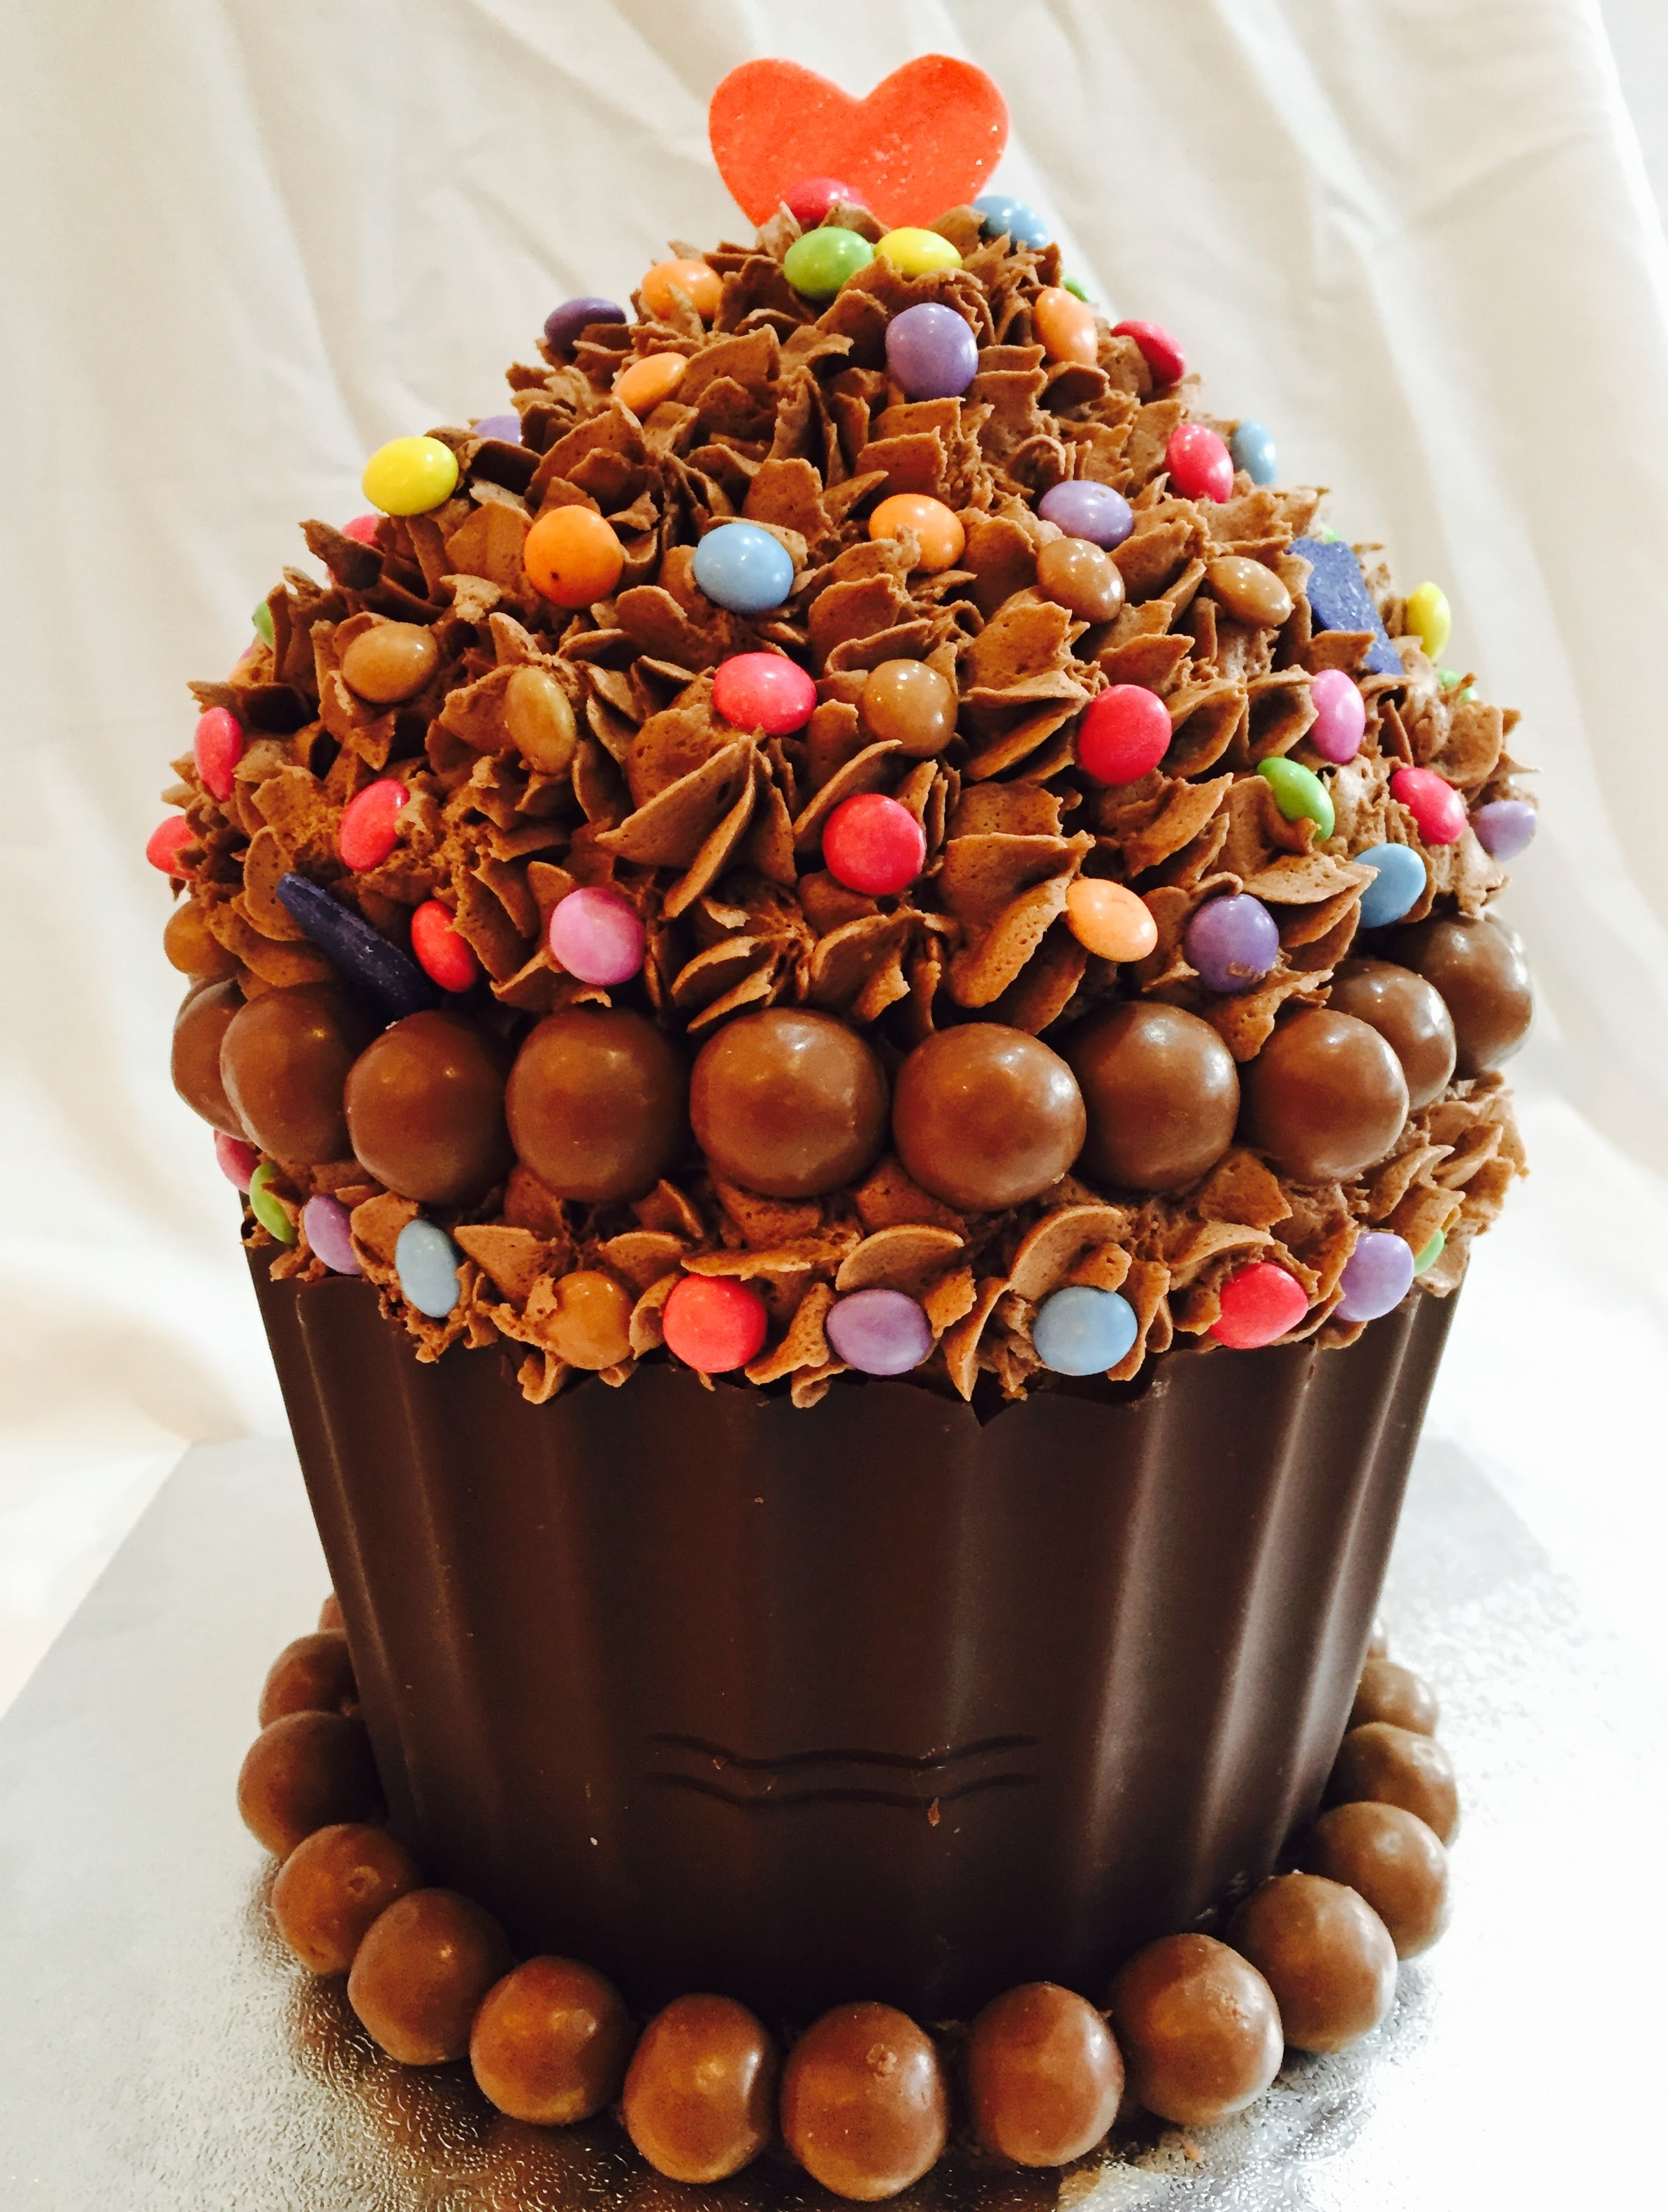 Chocolate giant cupcake with sponge cake and sweets as decoration